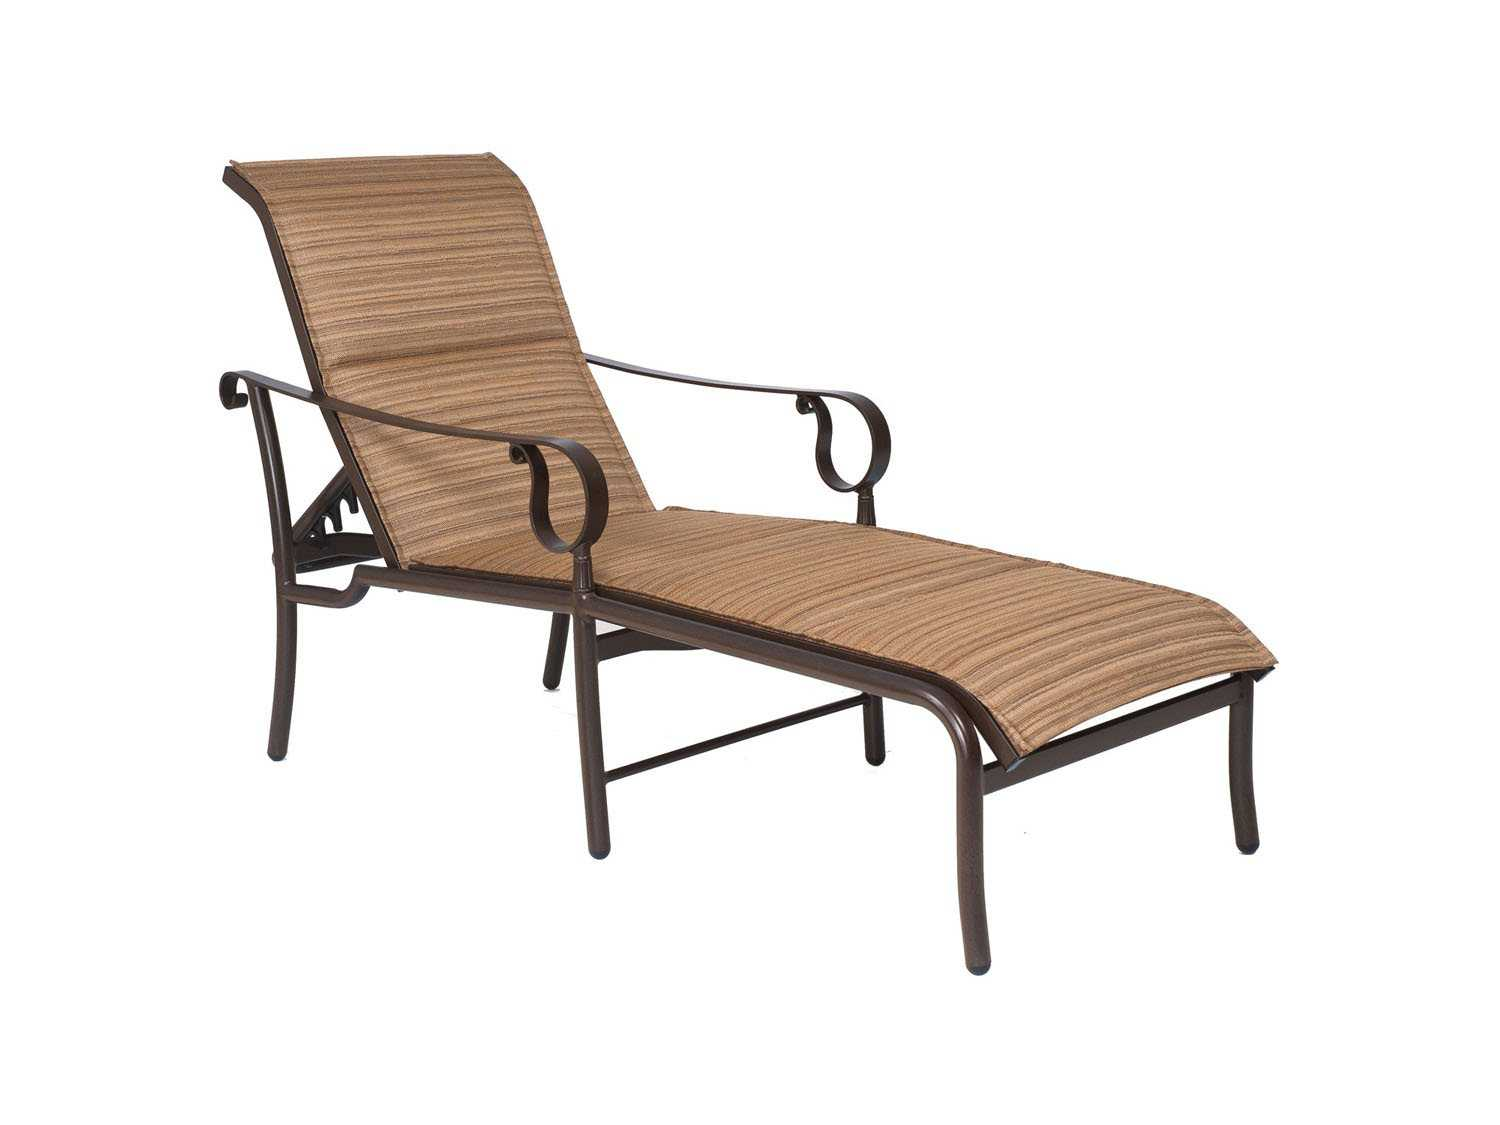 Woodard ridgecrest padded sling aluminum adjustable chaise for Aluminum chaise lounges